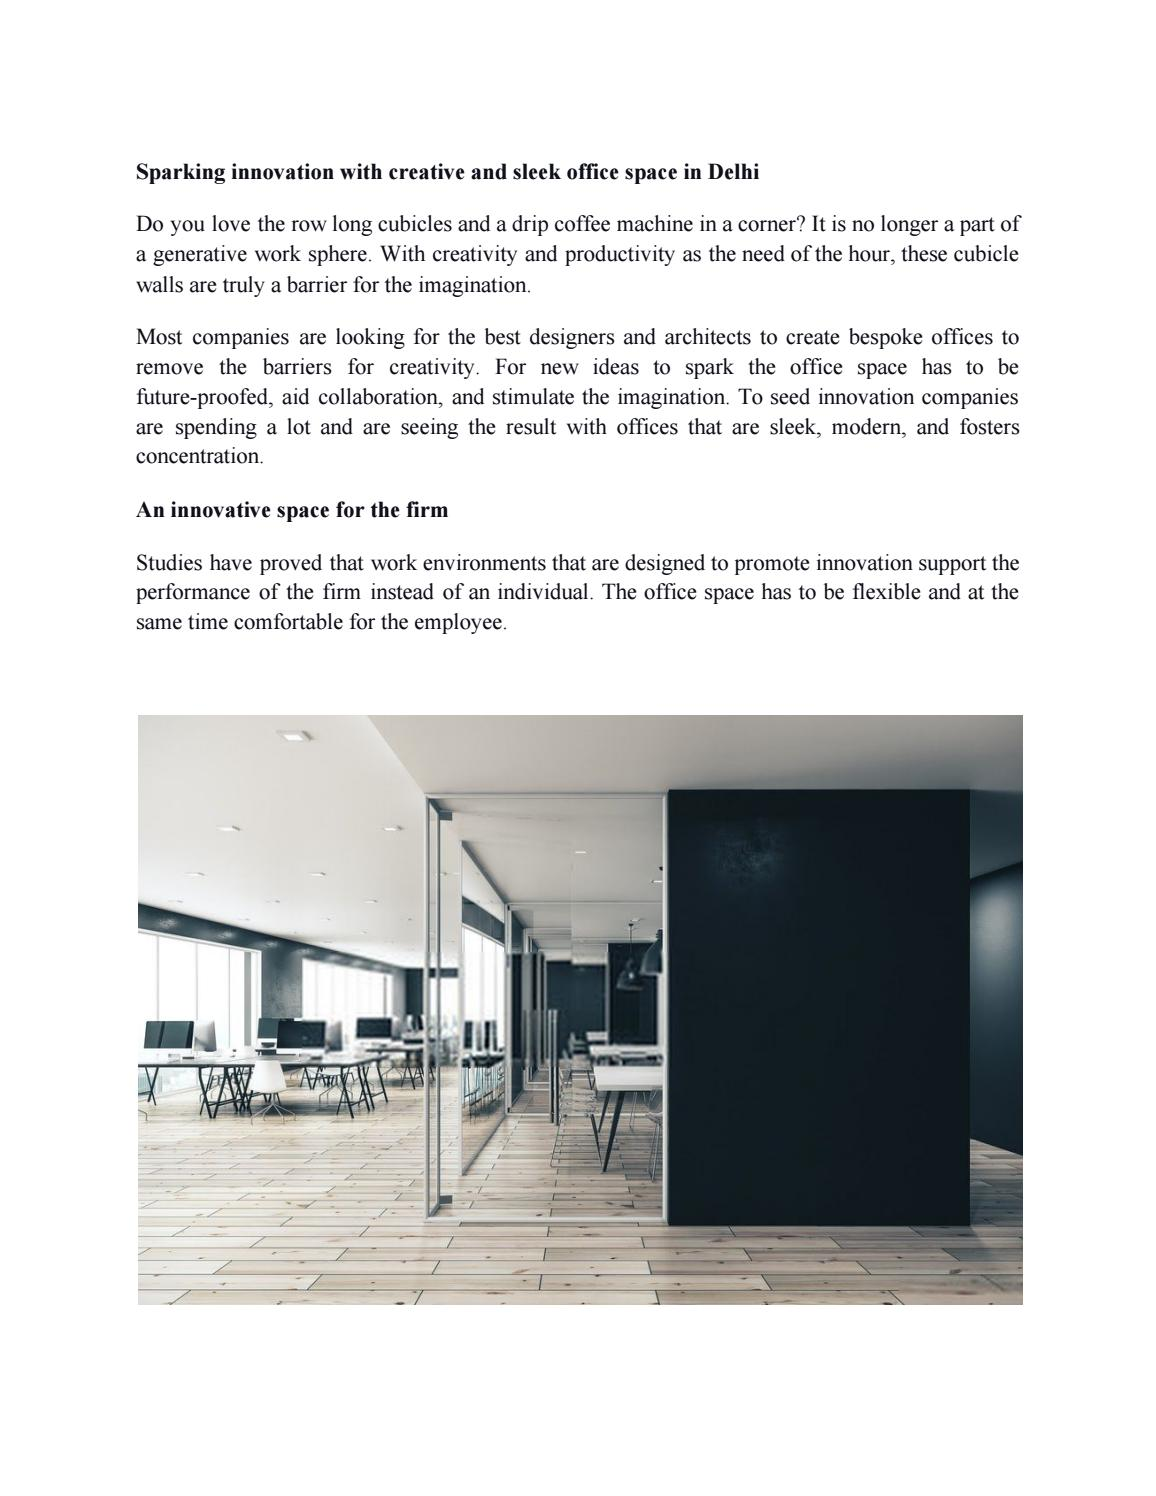 Sparking Innovation With Creative And Sleek Office Space In Delhi By Koel Mishra Issuu